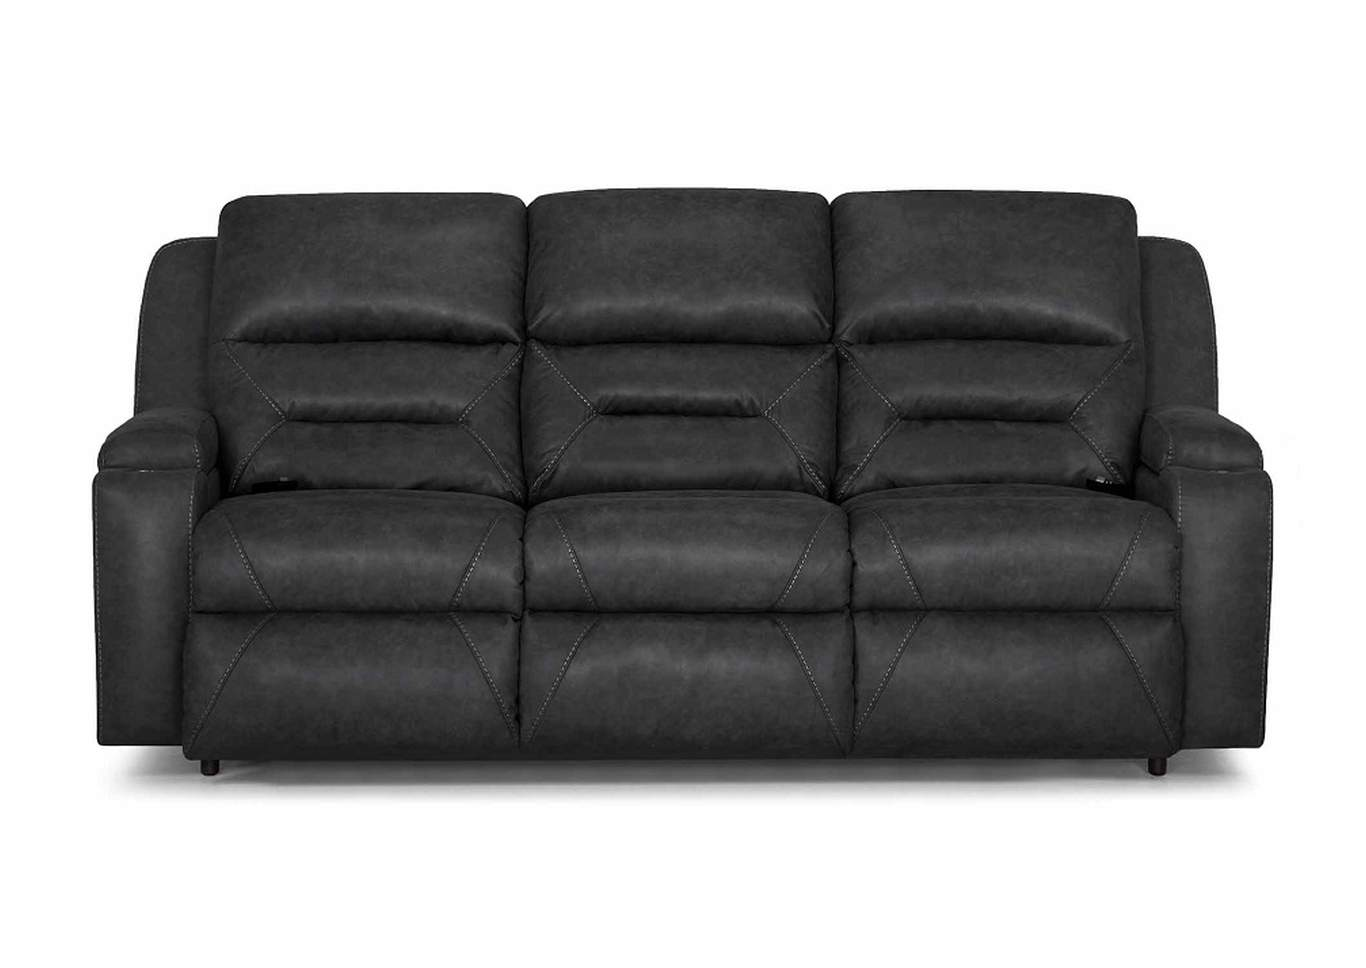 79847 Beacon Triple Power Recliner Sofa by Franklin,Old Brick